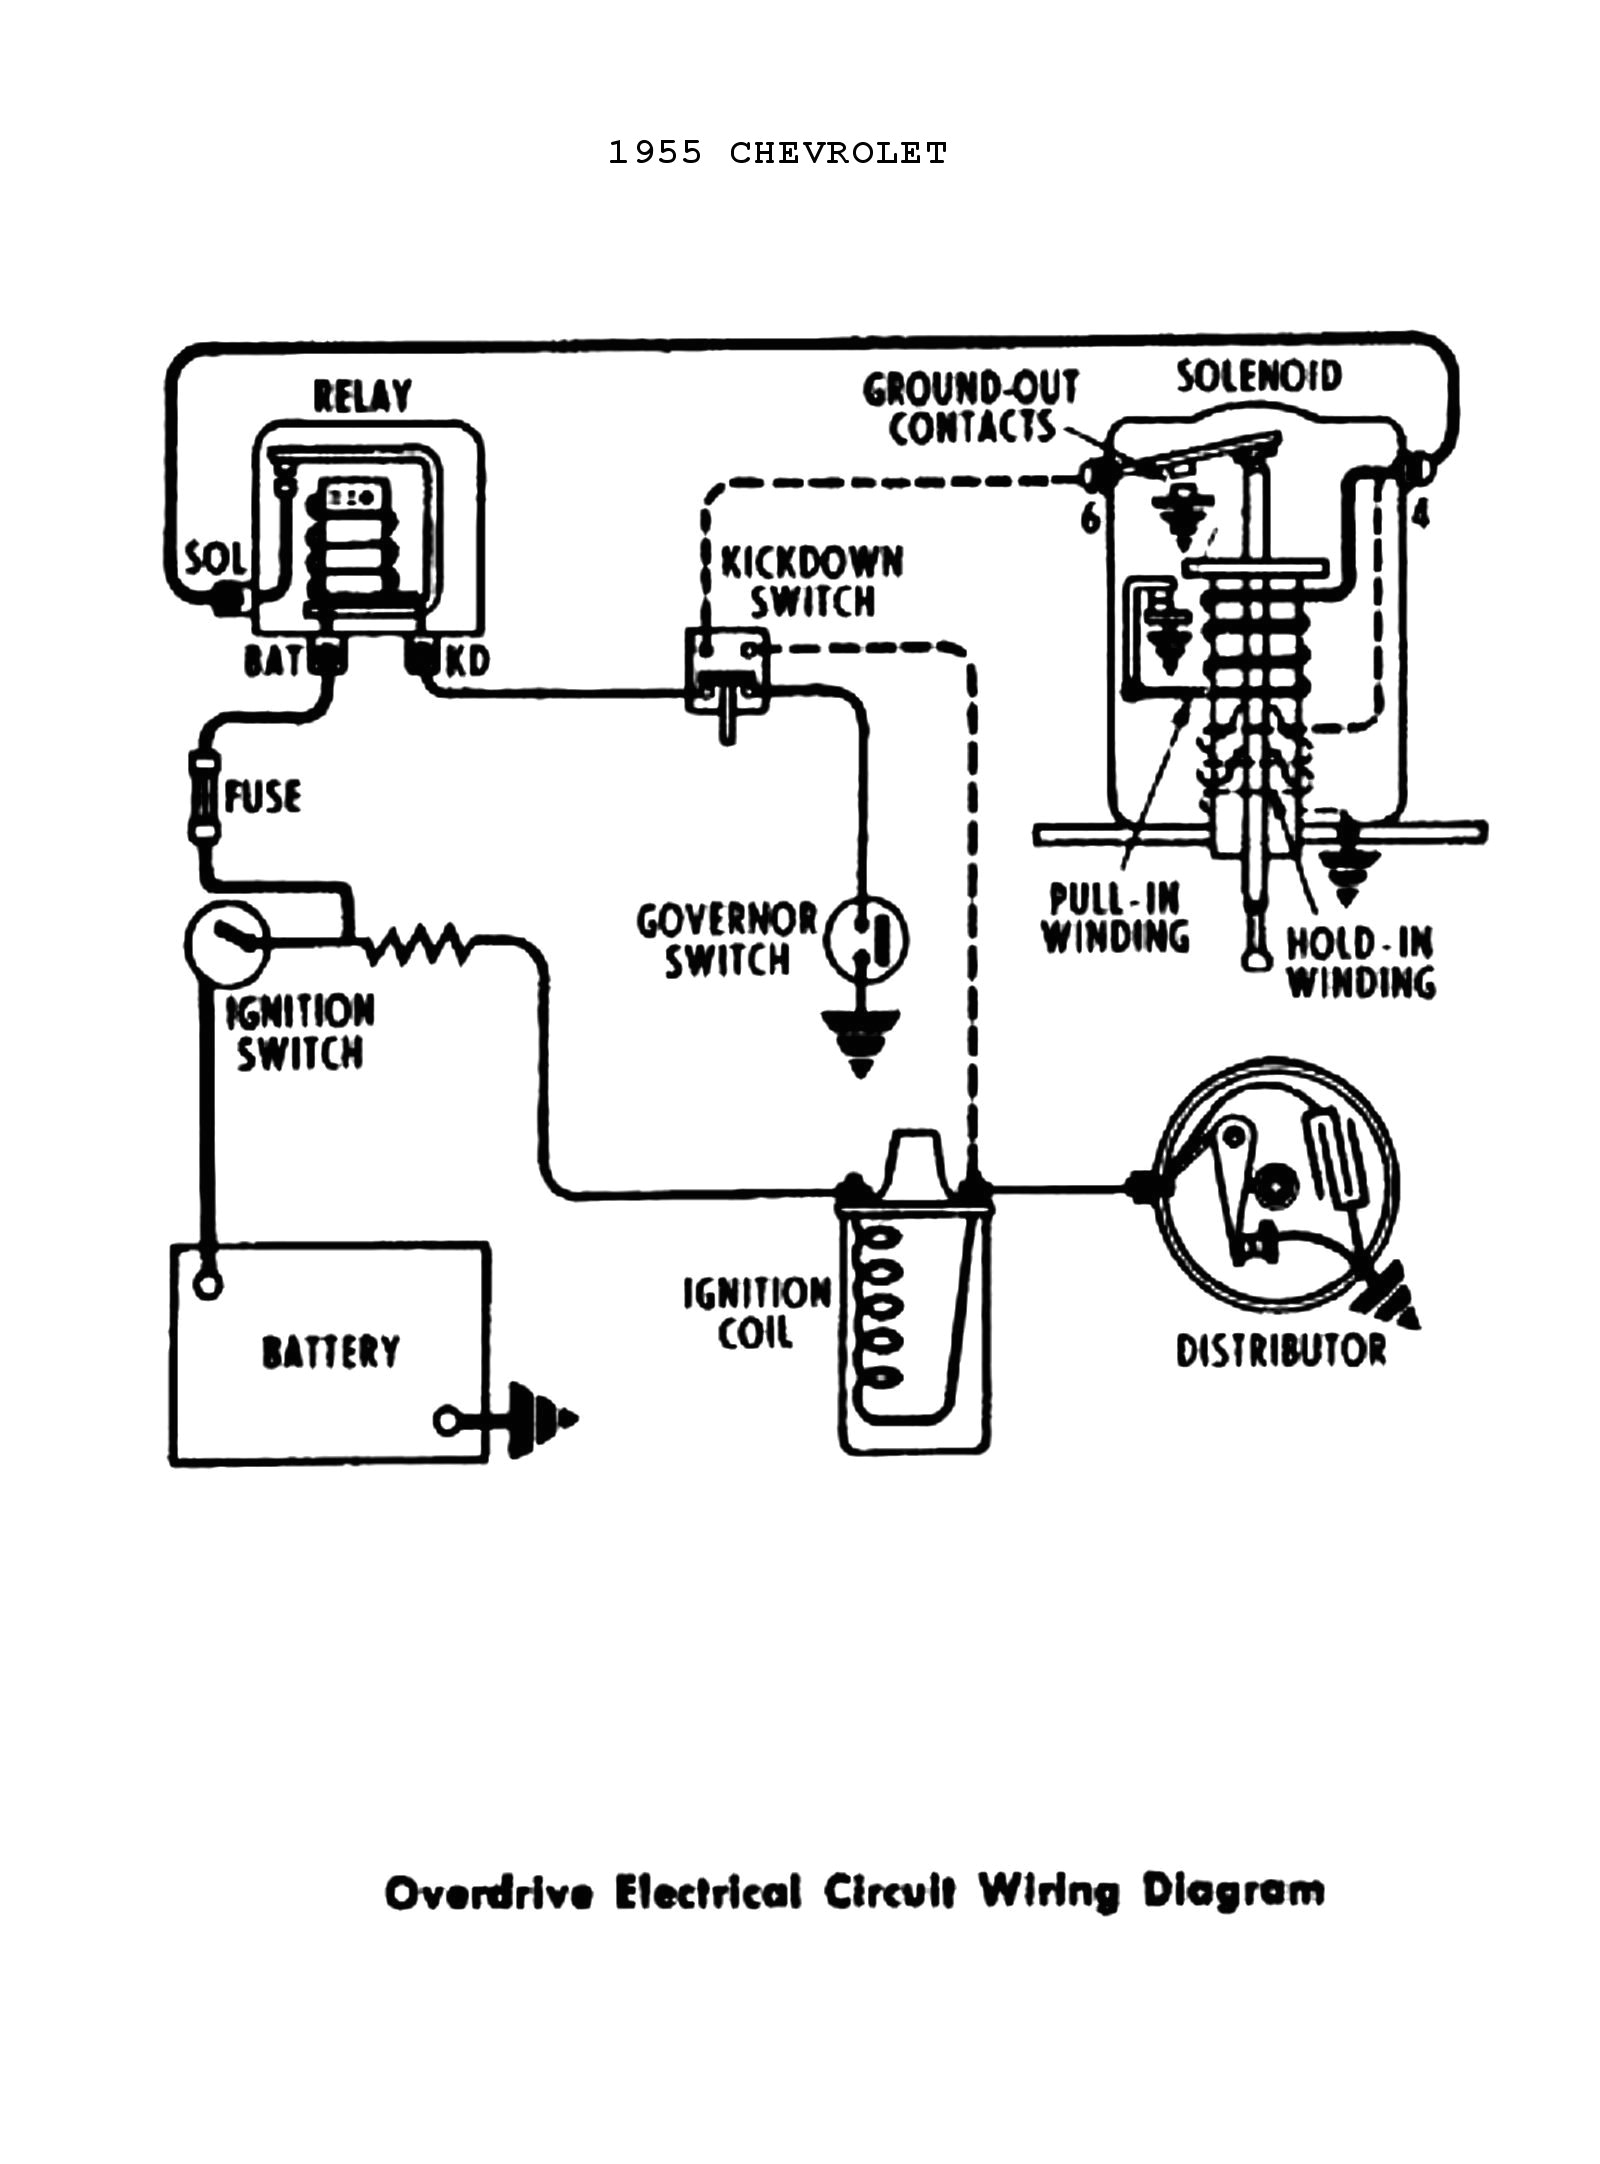 1950 chevy truck ignition wiring data wiring diagram car ignition wiring chevy truck switch diagram wiring